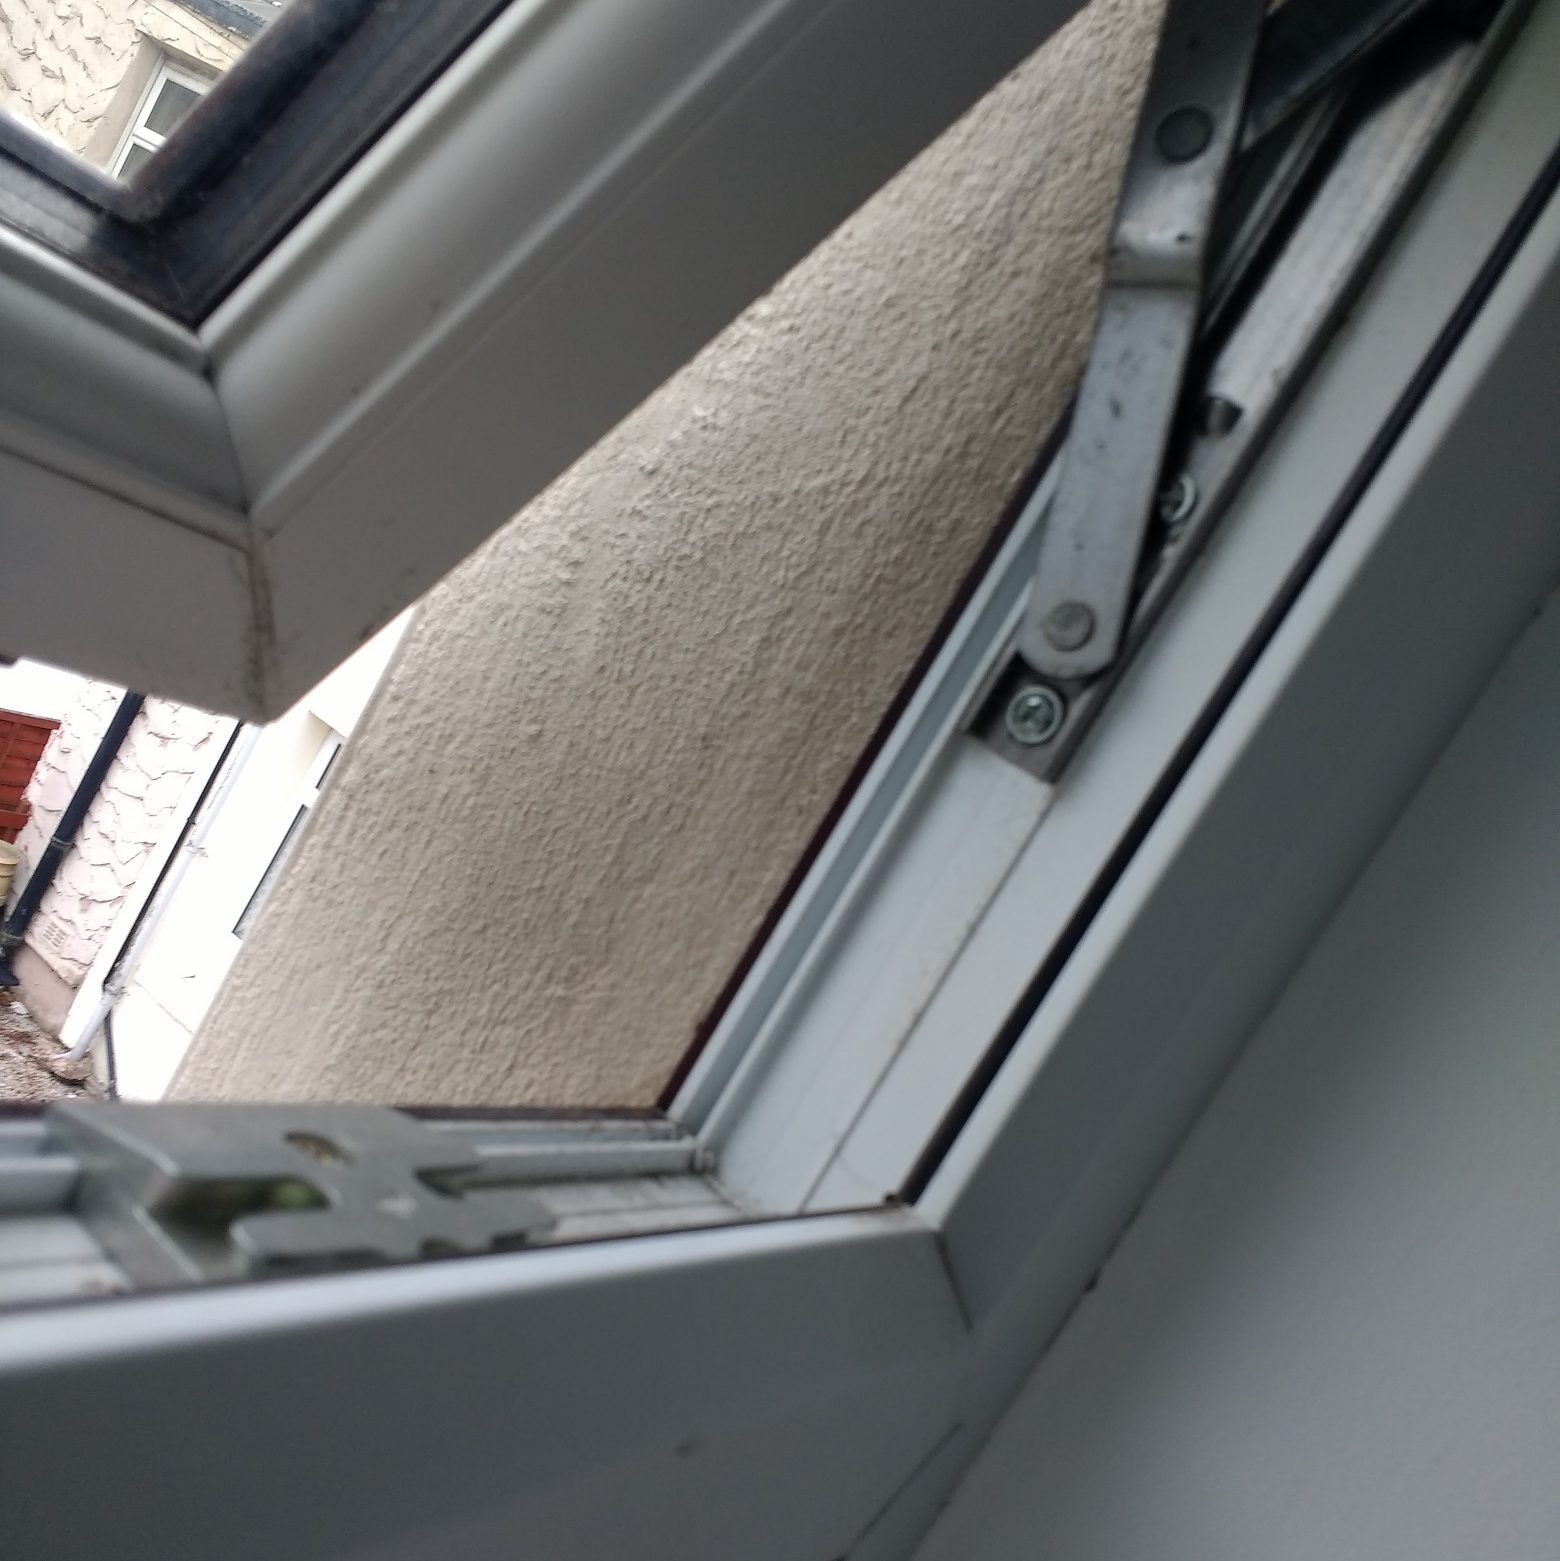 Double glazing reduces energy loss